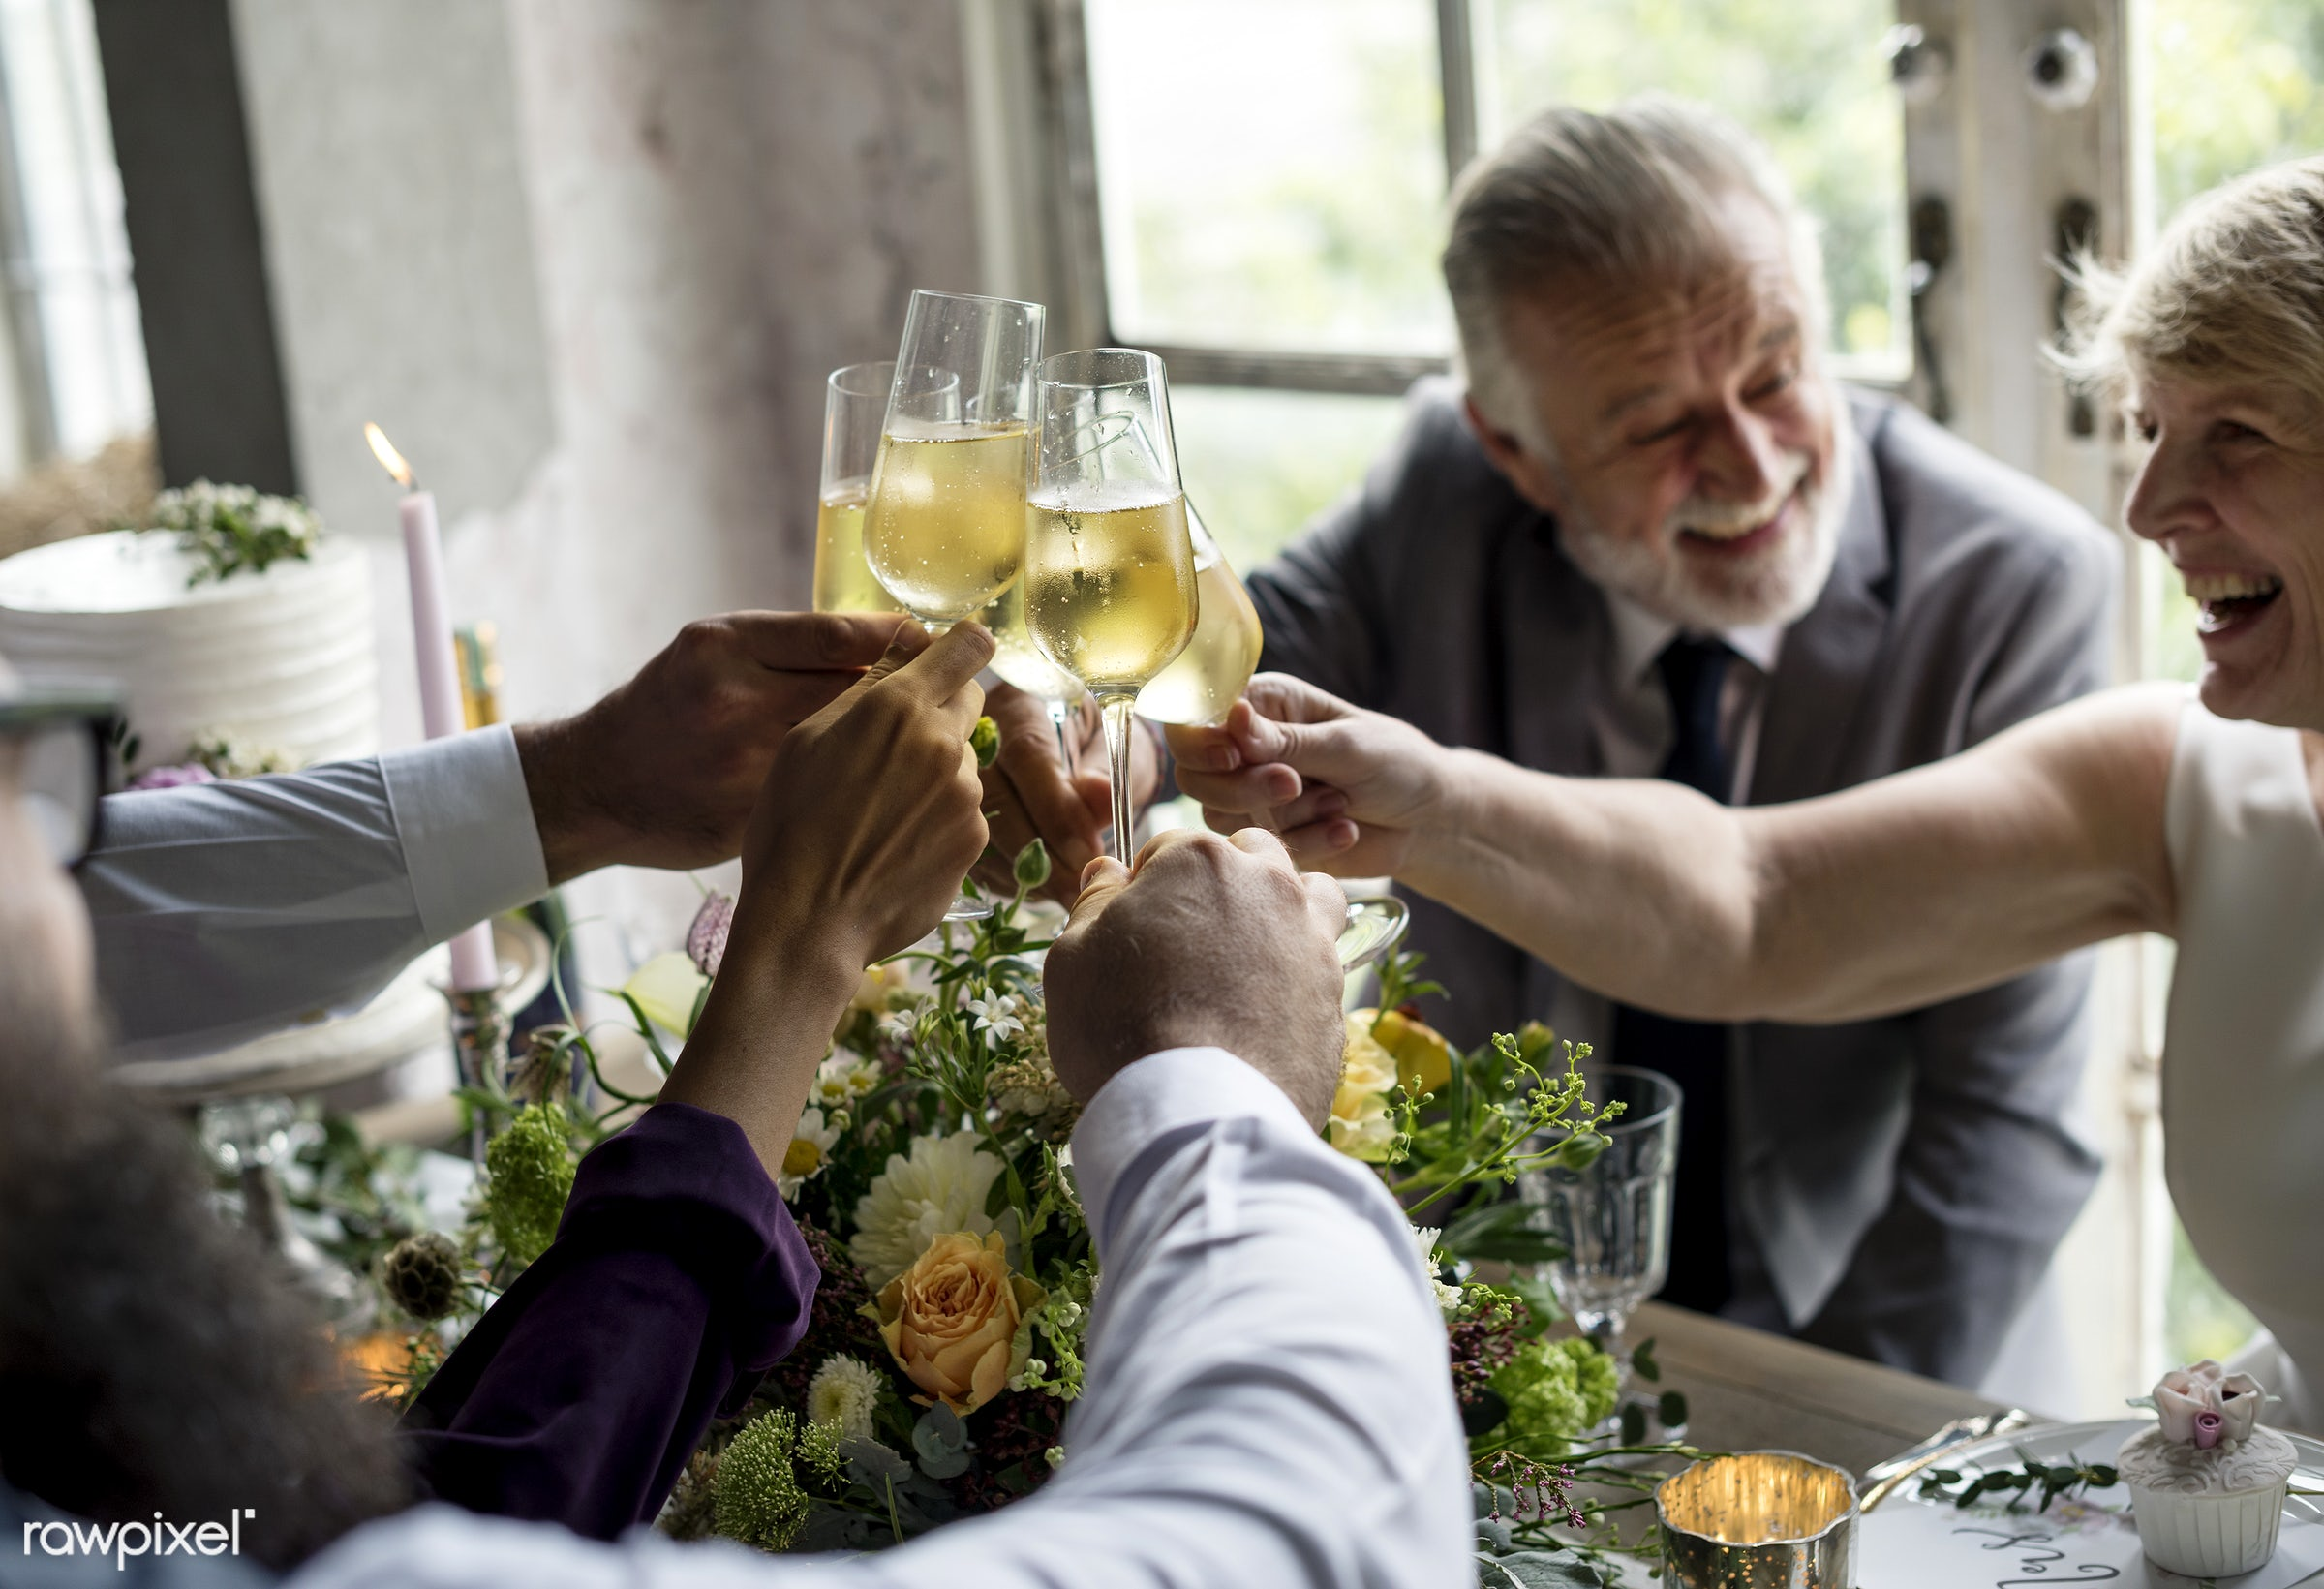 glasses, holding, occasion, congratulations, people, together, love, married, friends, congrats, hands, gather, drink,...